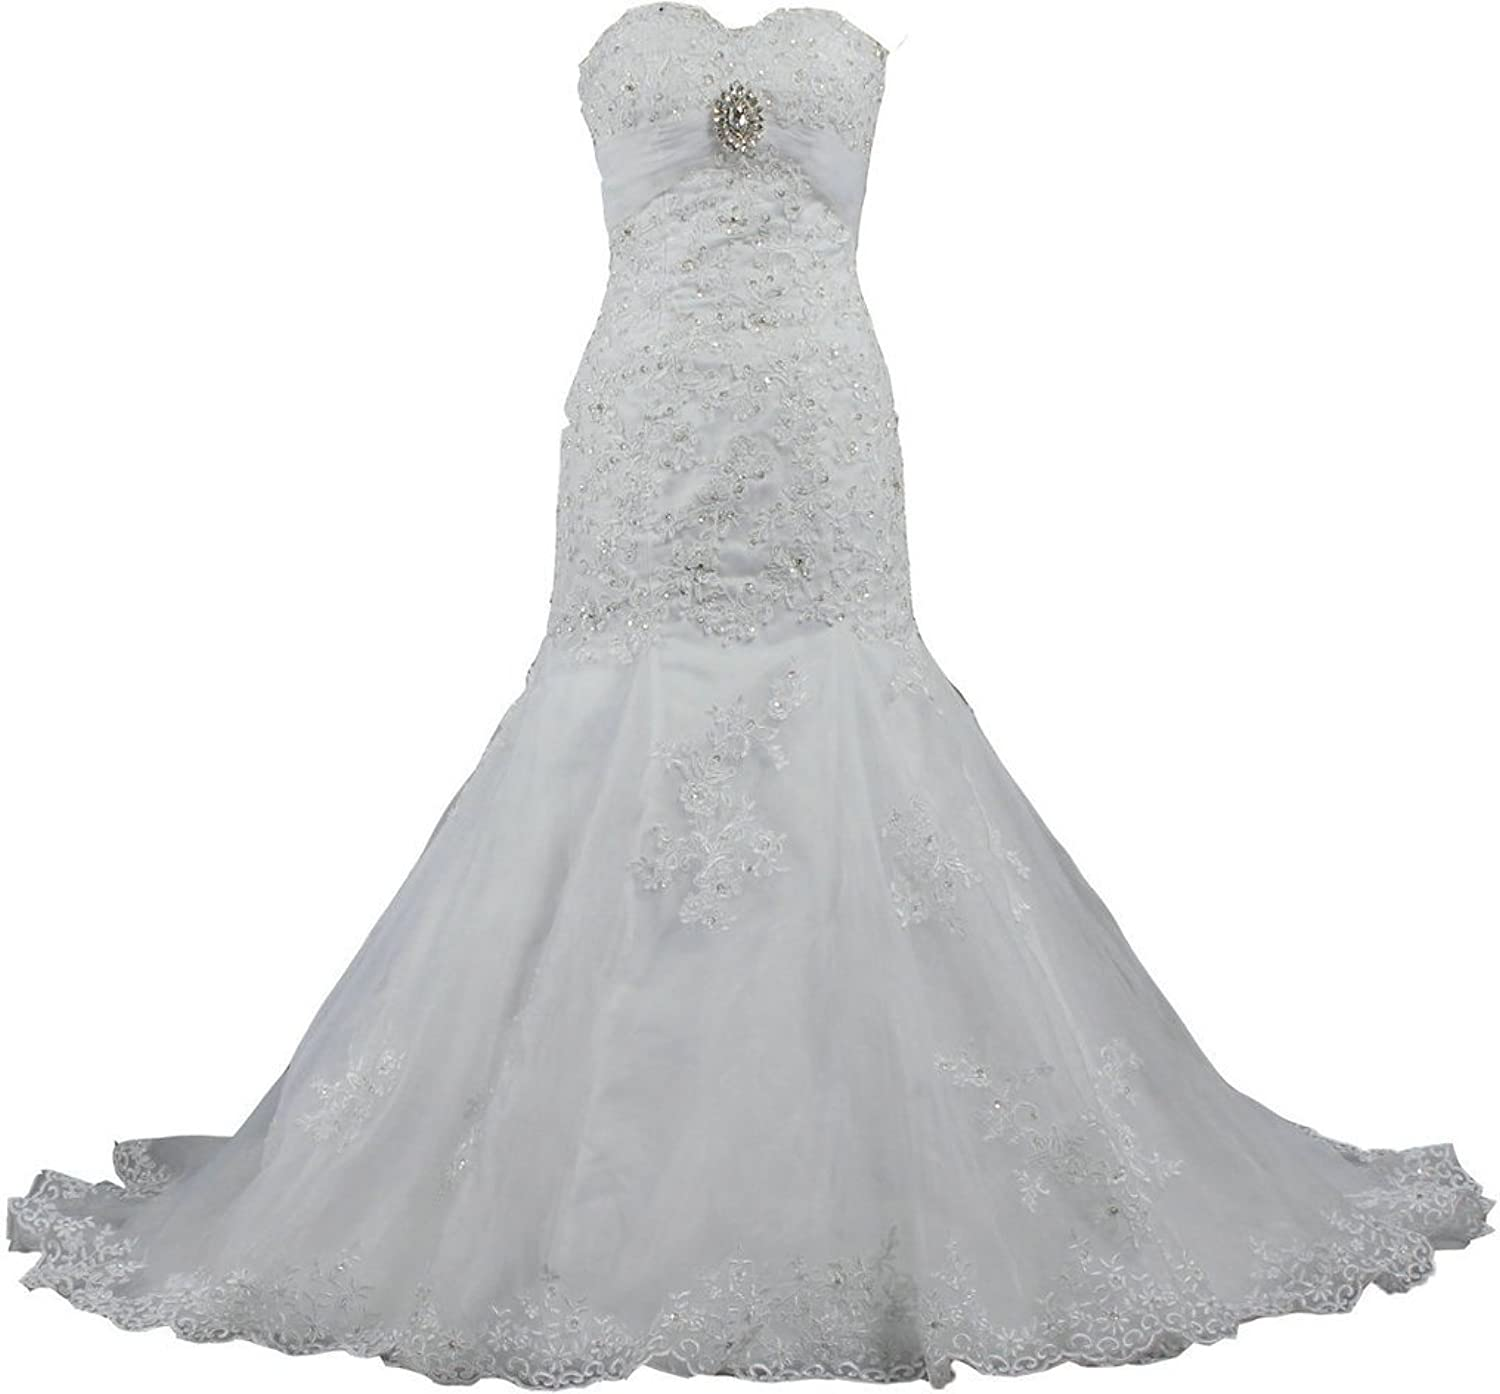 ANTS Sweetheart Mermaid Wedding Bridal Dresses Lace and Tulle